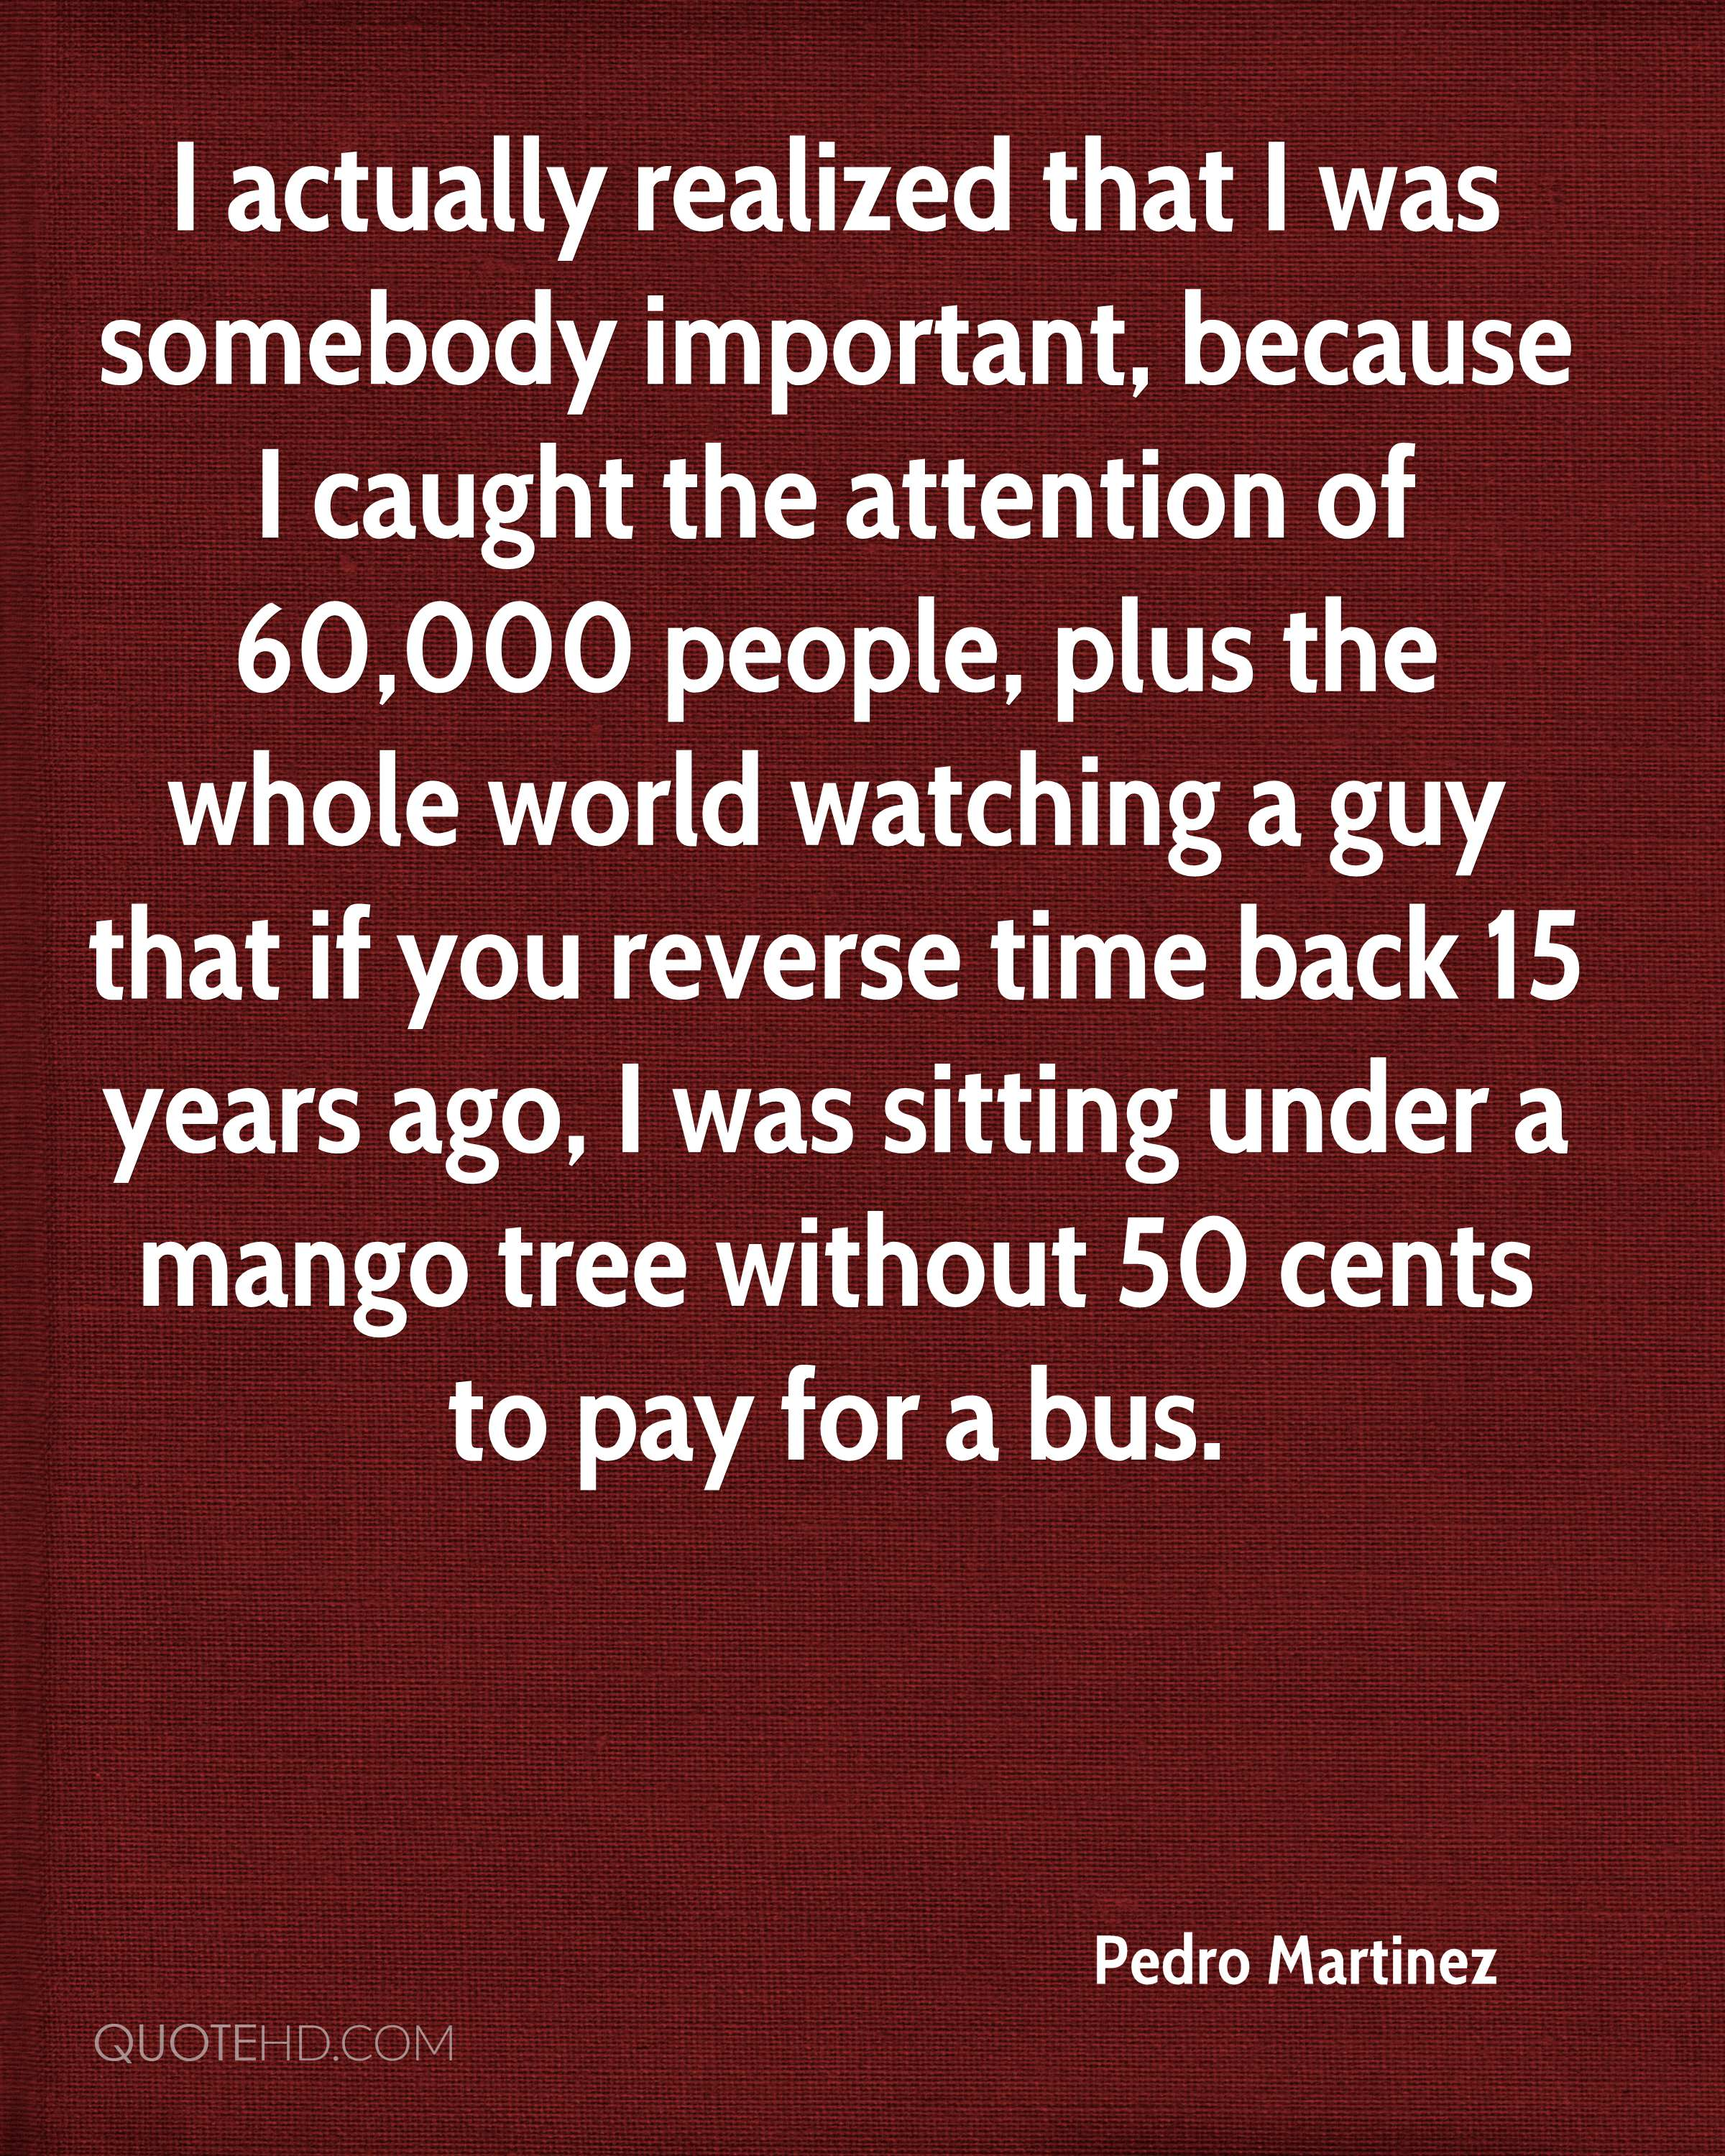 I actually realized that I was somebody important, because I caught the attention of 60,000 people, plus the whole world watching a guy that if you reverse time back 15 years ago, I was sitting under a mango tree without 50 cents to pay for a bus.